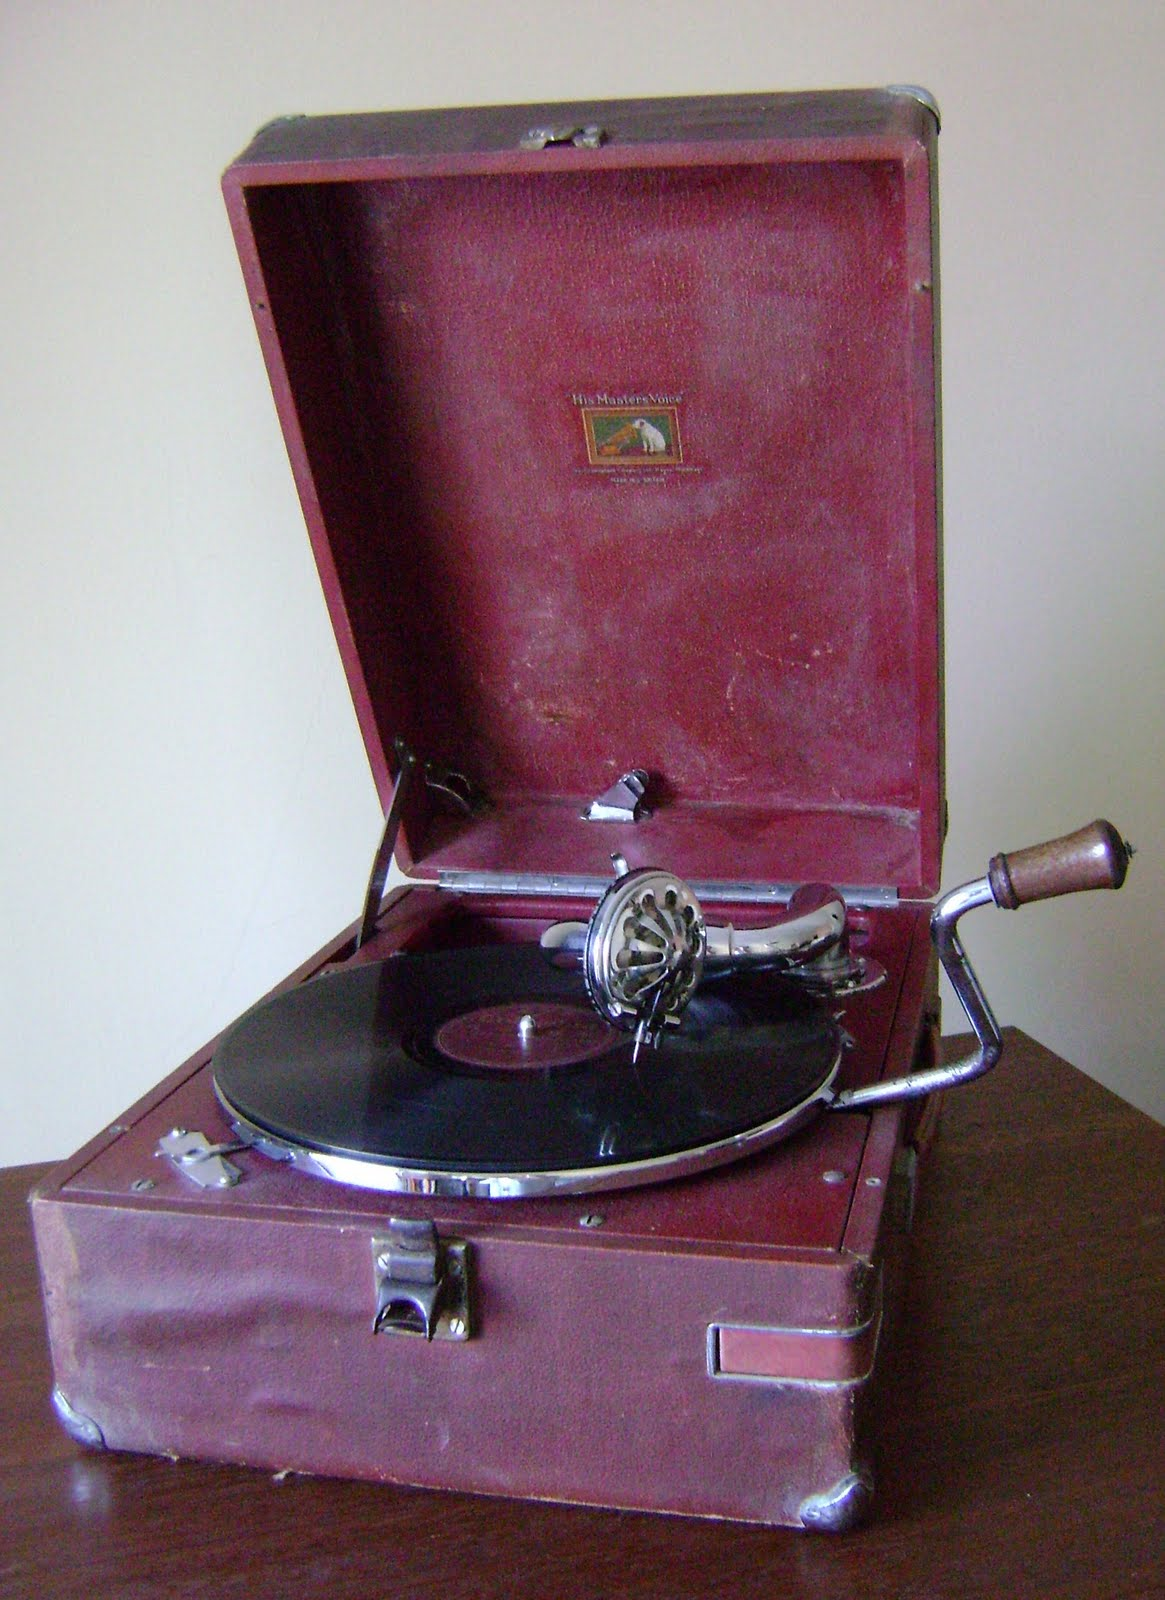 What Is My Paypal Email >> KINTA VALLEY AUDIO: His Master's Voice gramophone ( Used ) Sold